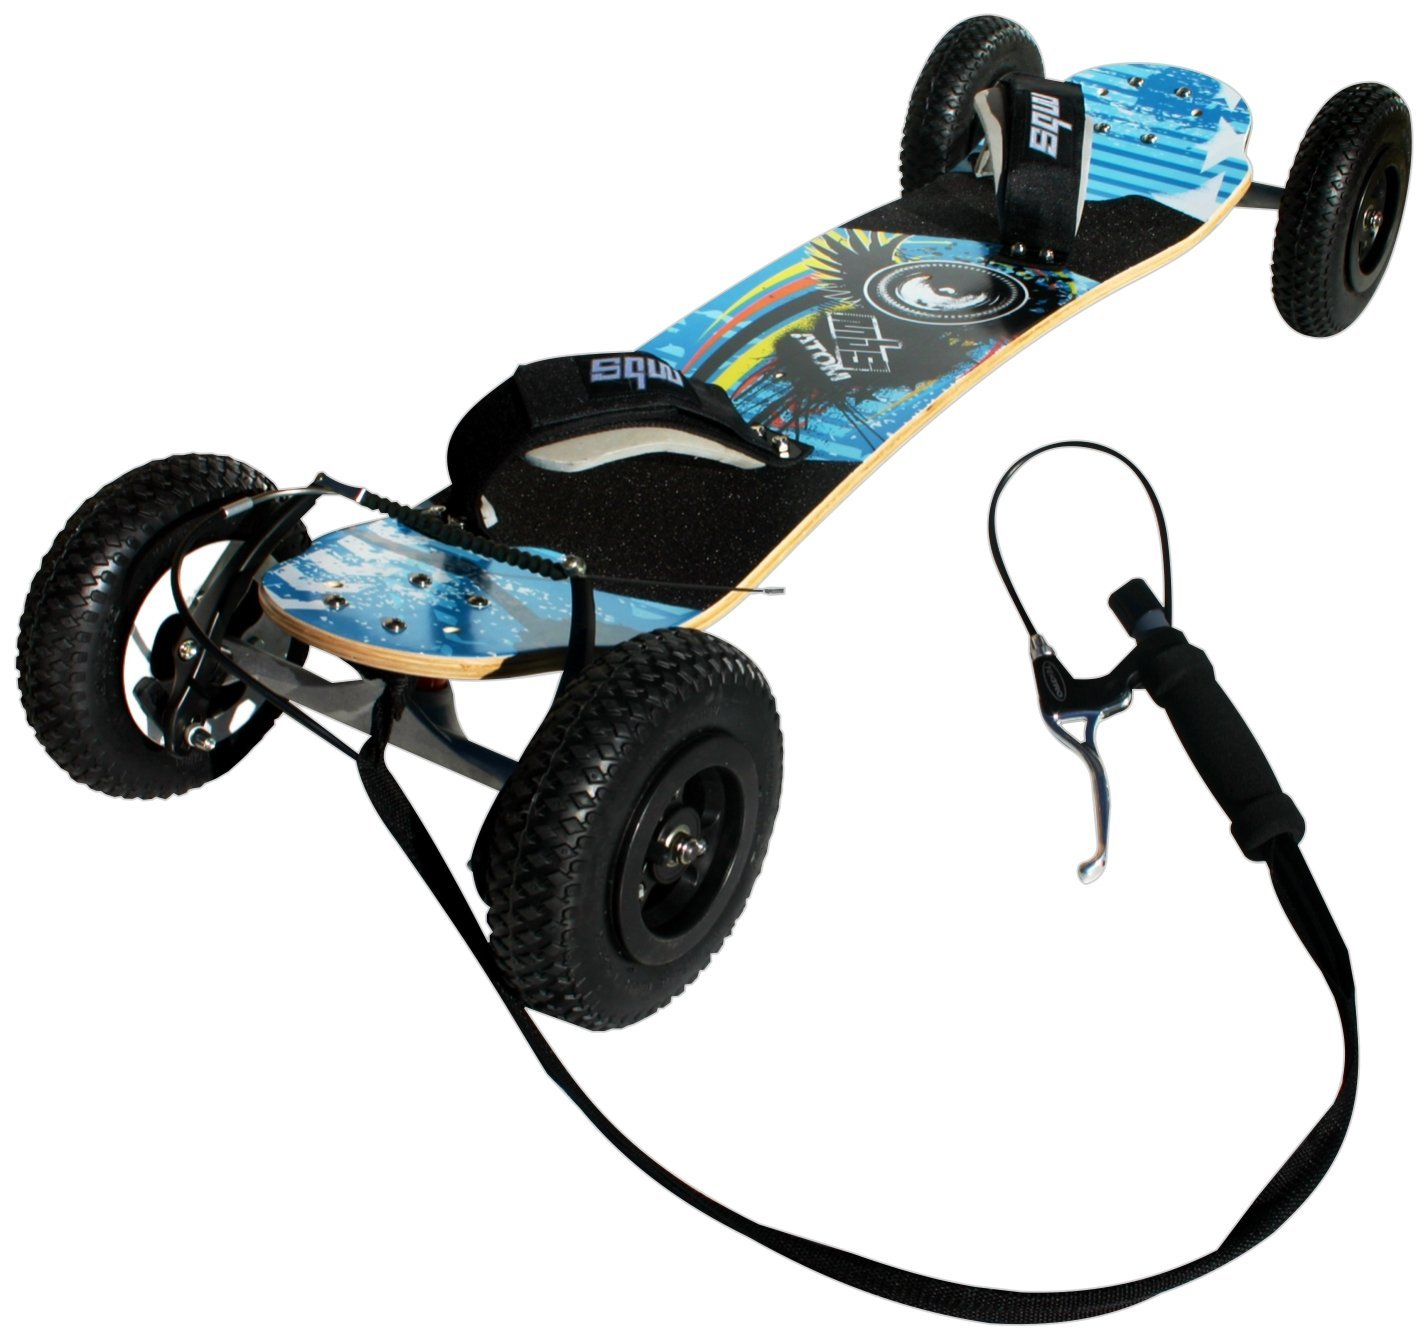 Atom 95x mountainboard